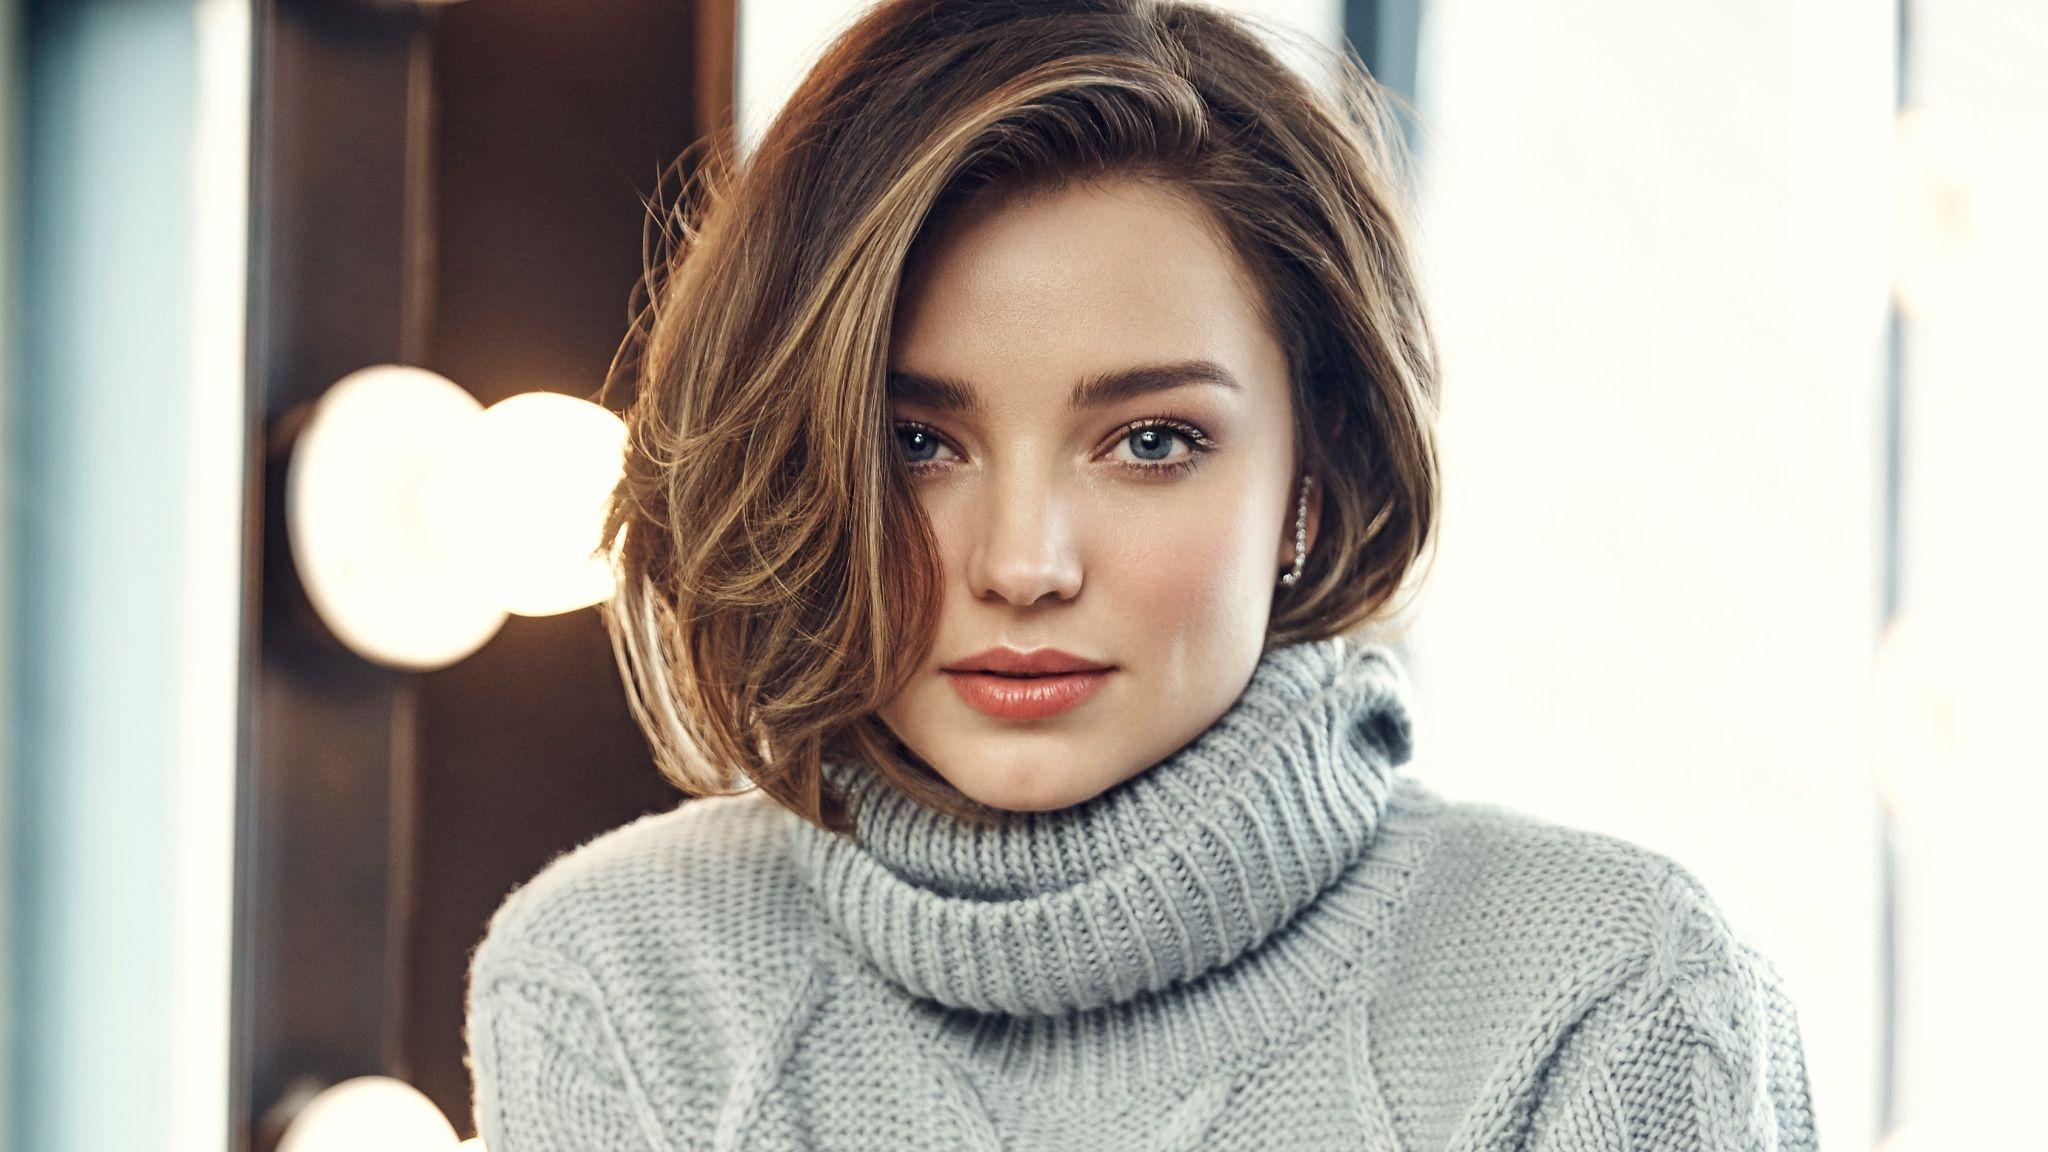 Miranda Kerr 2017 | Celebrities HD 4k Wallpapers